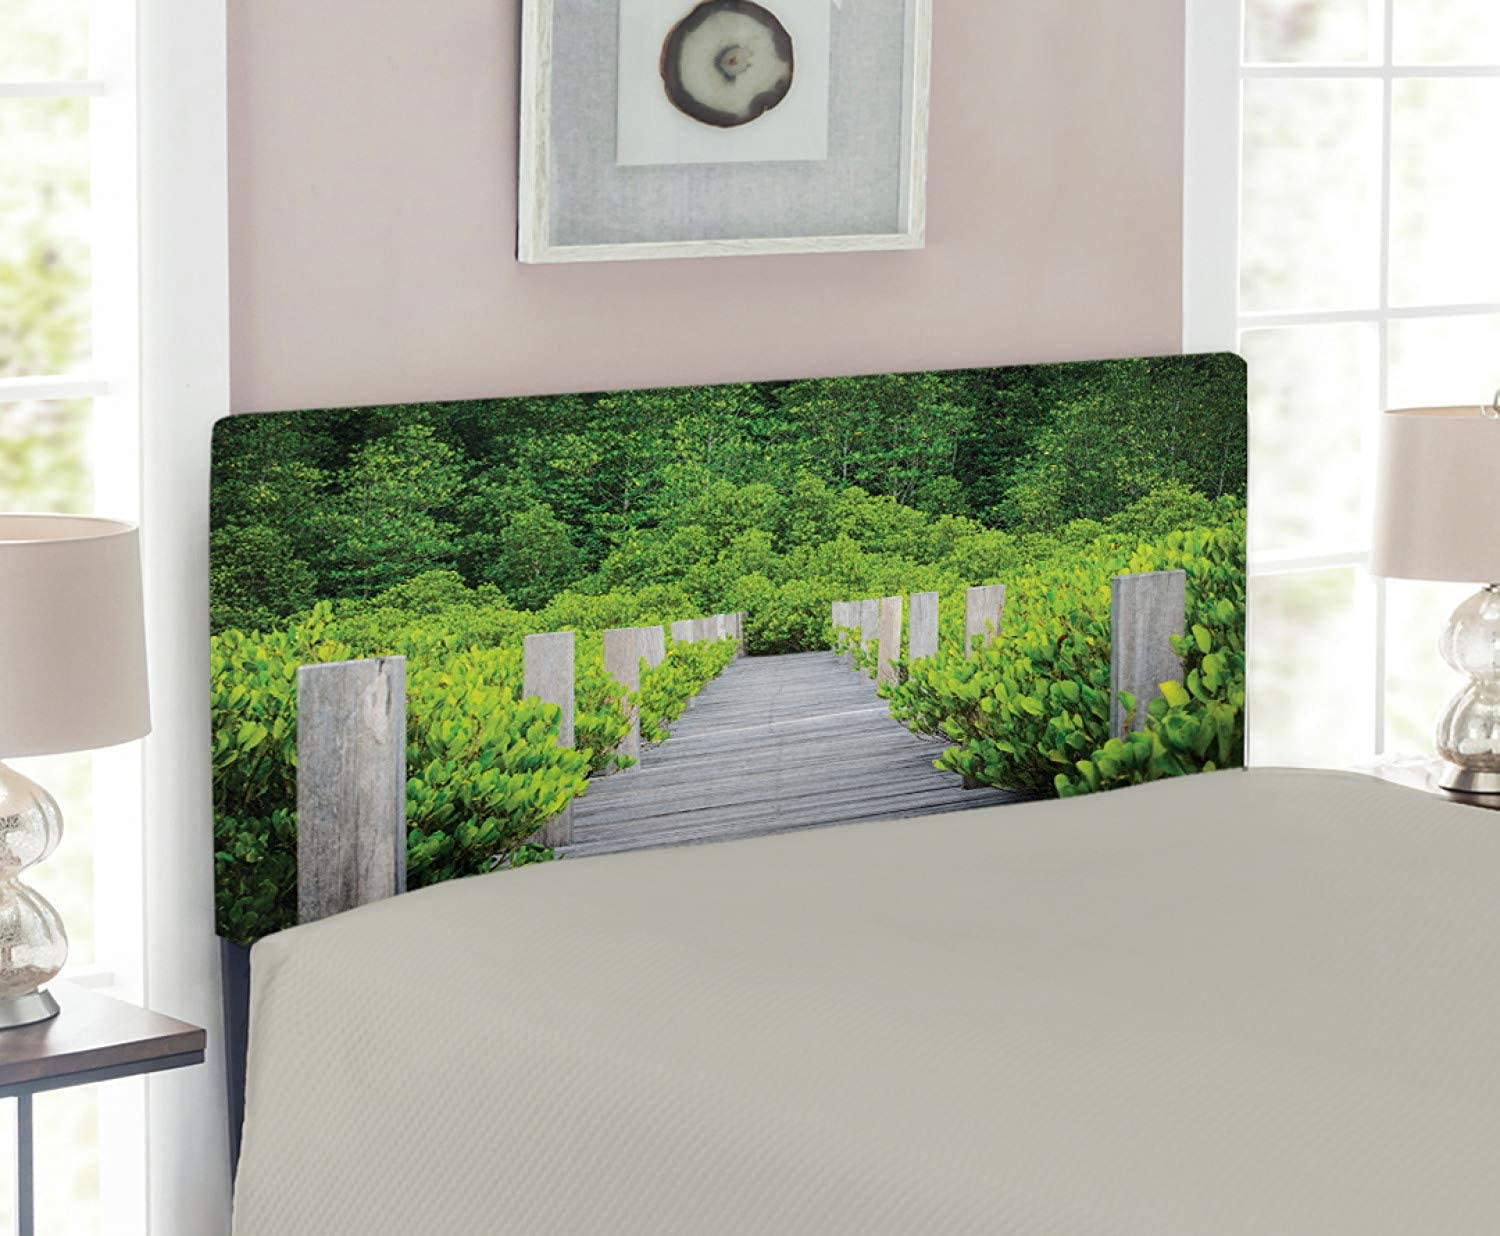 Lunarable Landscape Headboard for Twin Size Bed, Wooden Bridge Surrounded by Mangroves Forest Dense Foliage in Thailand Print, Upholstered Decorative Metal Headboard with Memory Foam, Green Pale Grey